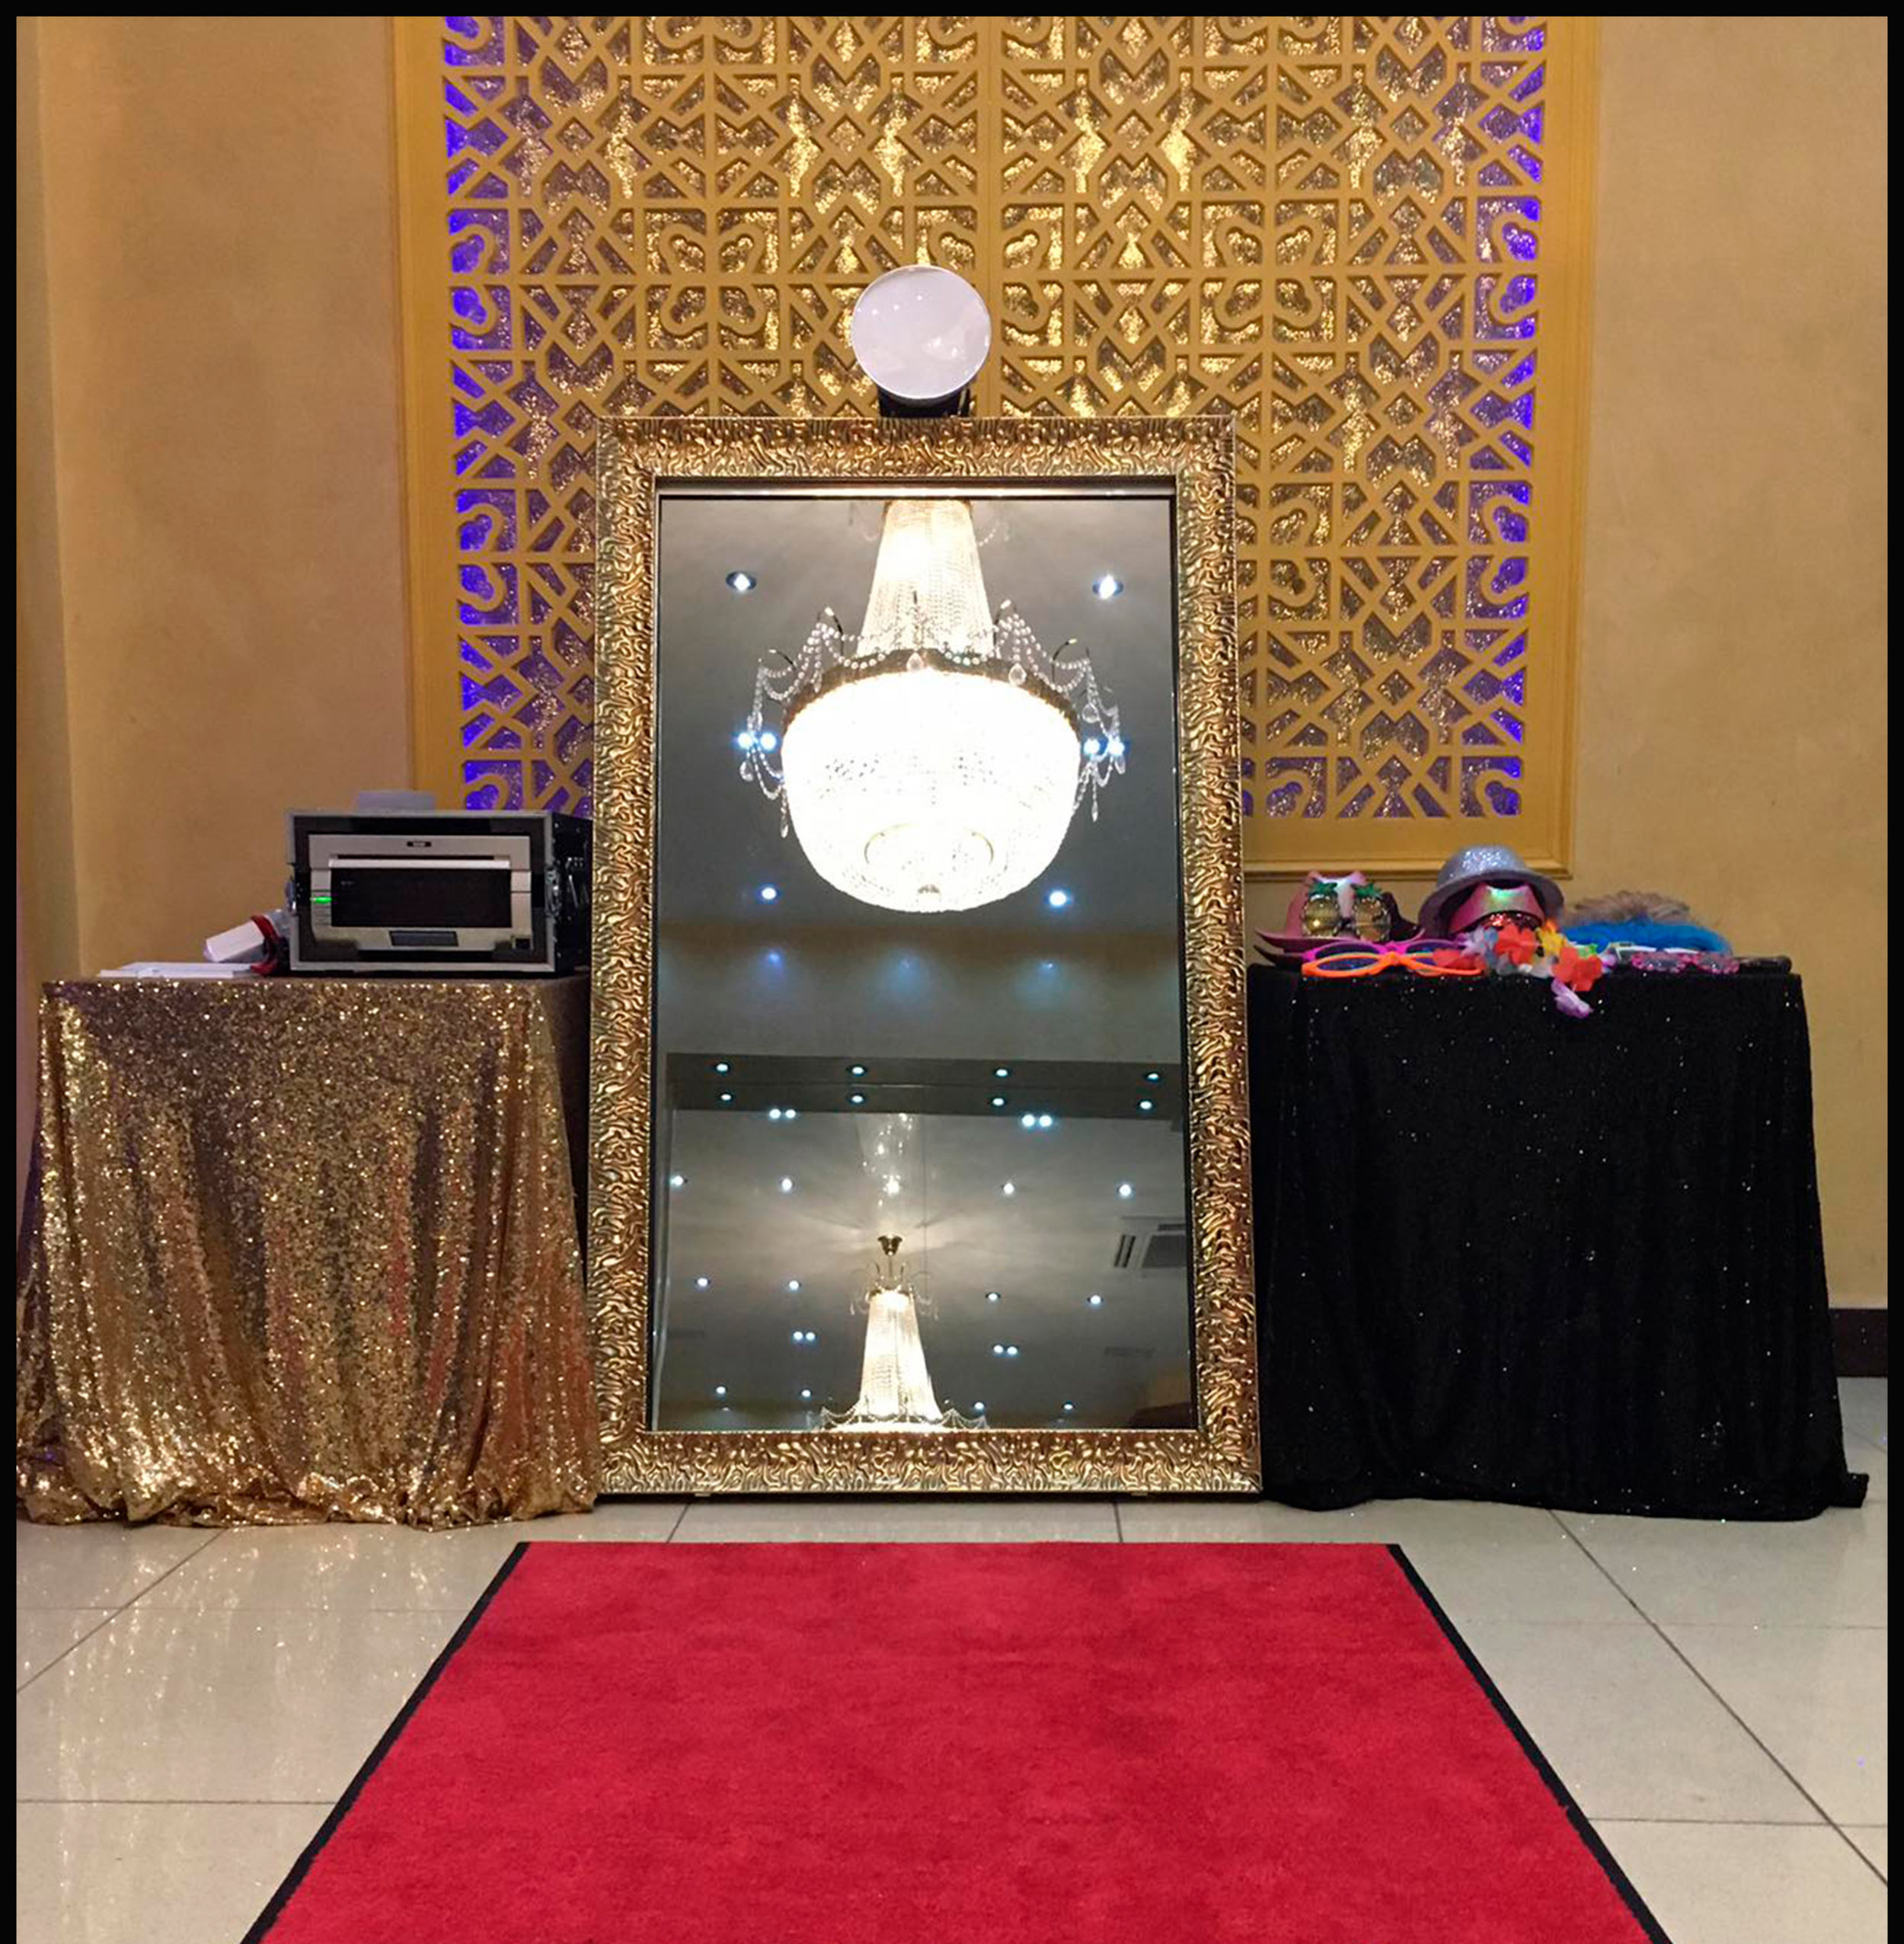 HIRE A PHOTO BOOTH AND SAVE MONEY